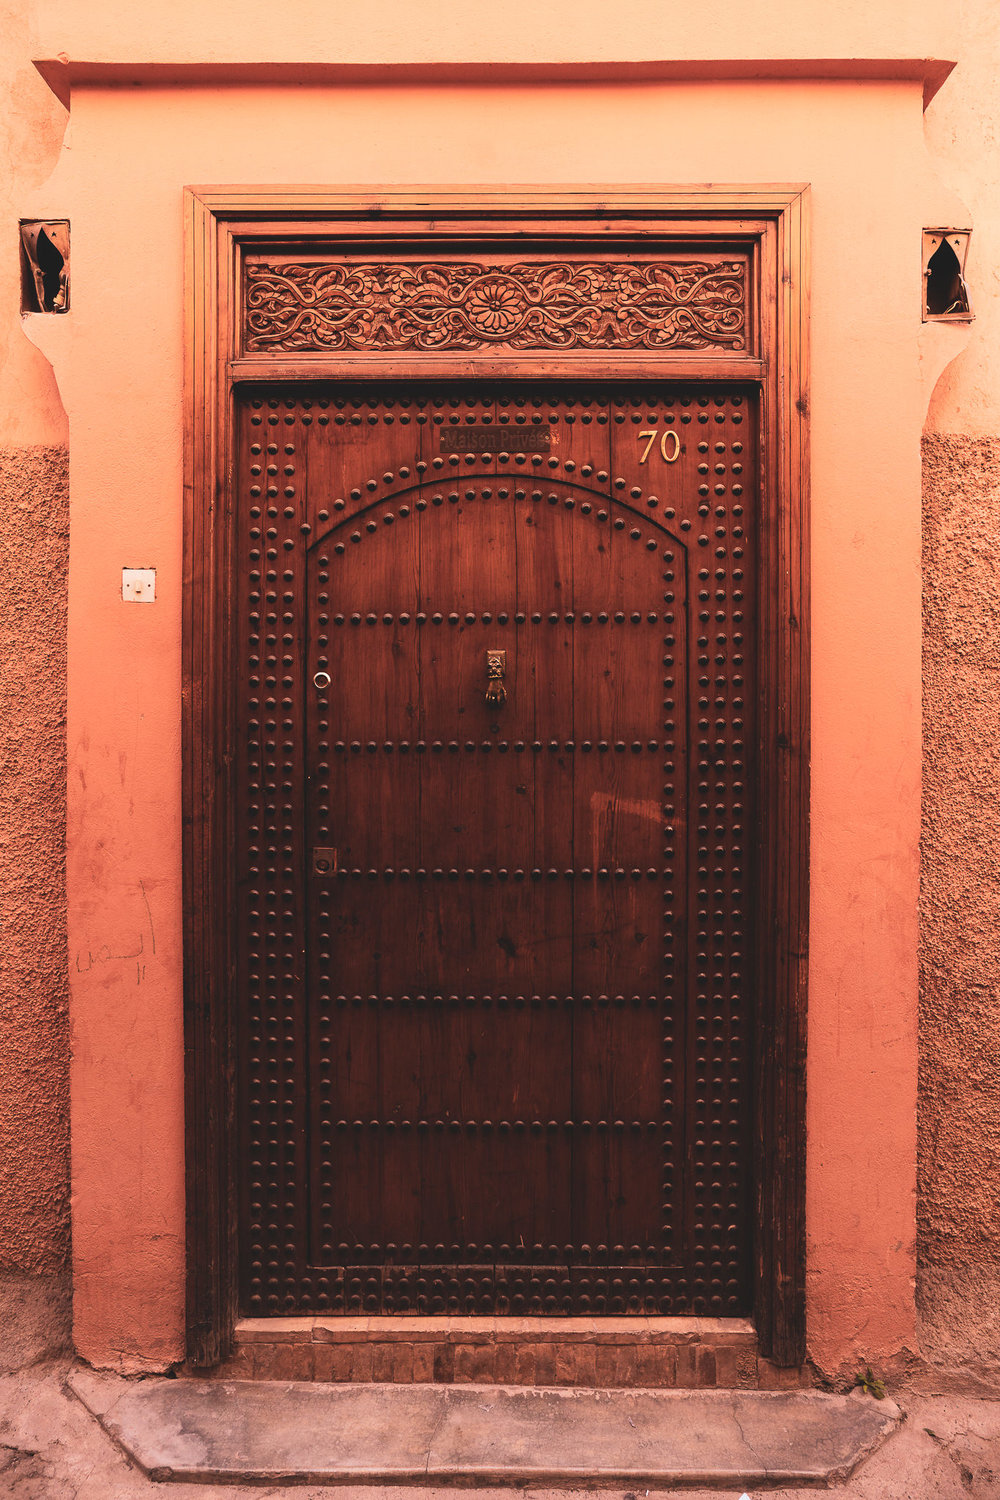 Marrakech ornate door #2